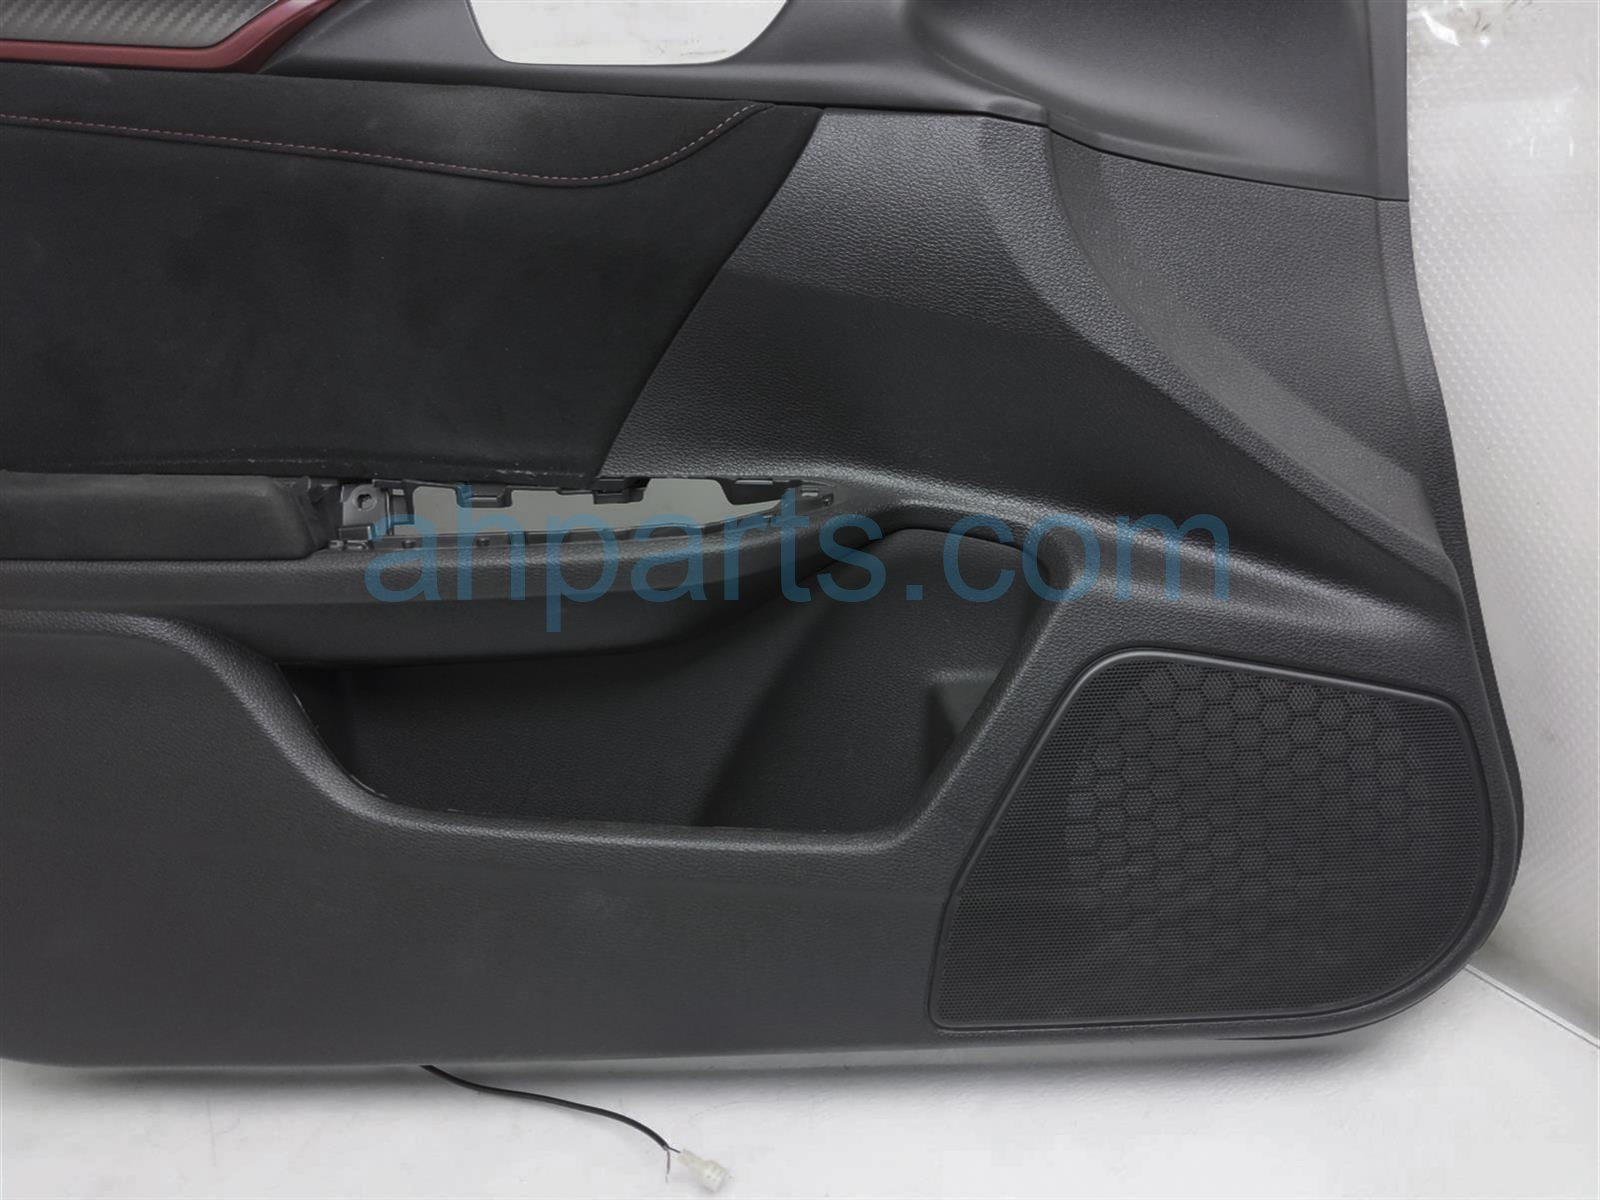 2018 Honda Civic Trim Liner Front Driver Door Panel Black/red Type R 83552 TGH A01ZA Replacement